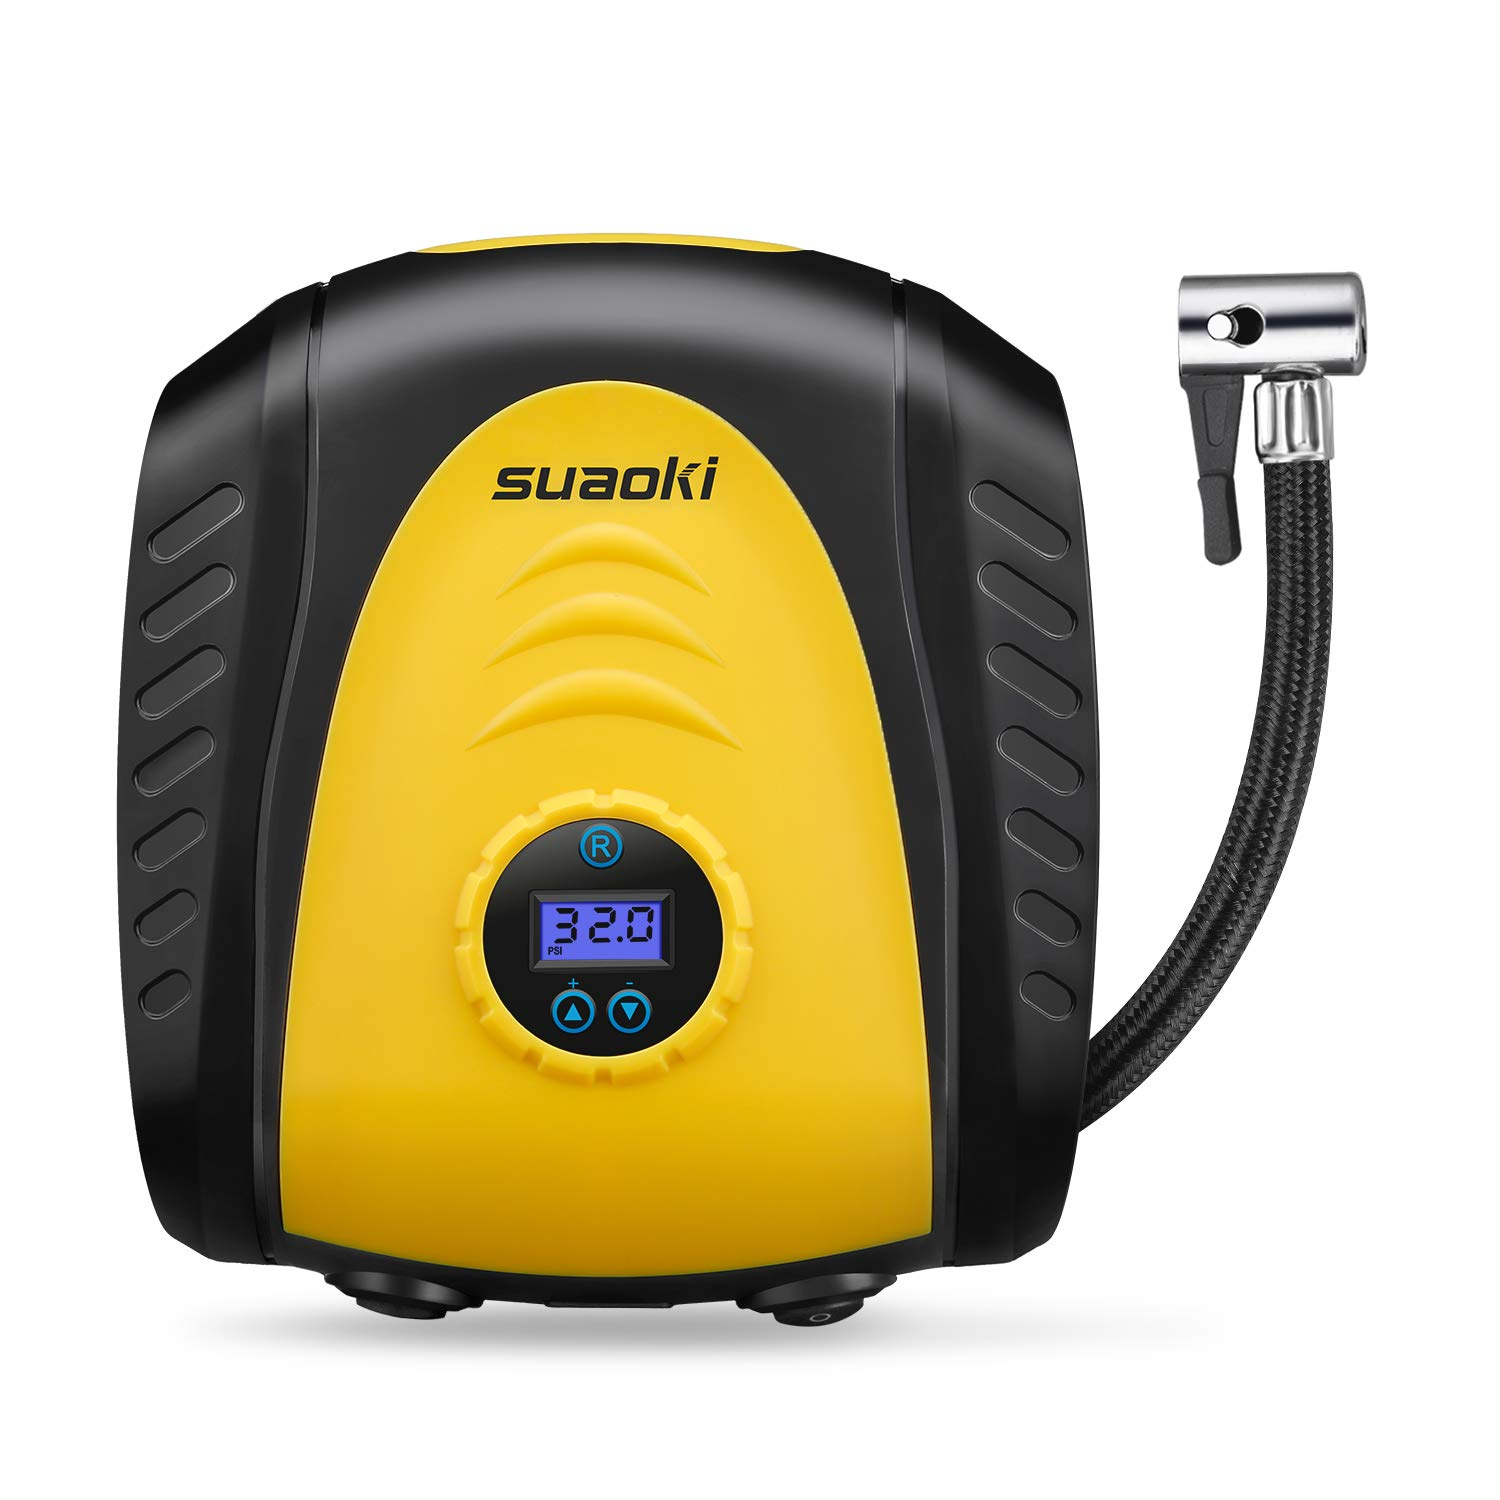 SUAOKI Portable Air Compressor Pump 150PSI Pressure Auto Shut Down Tire Inflator 12V 3m Long Range Cable 3 Multi-Purpose Nozzle Adapters and Digital LED Display for Car Bicycle Motorcycle Football